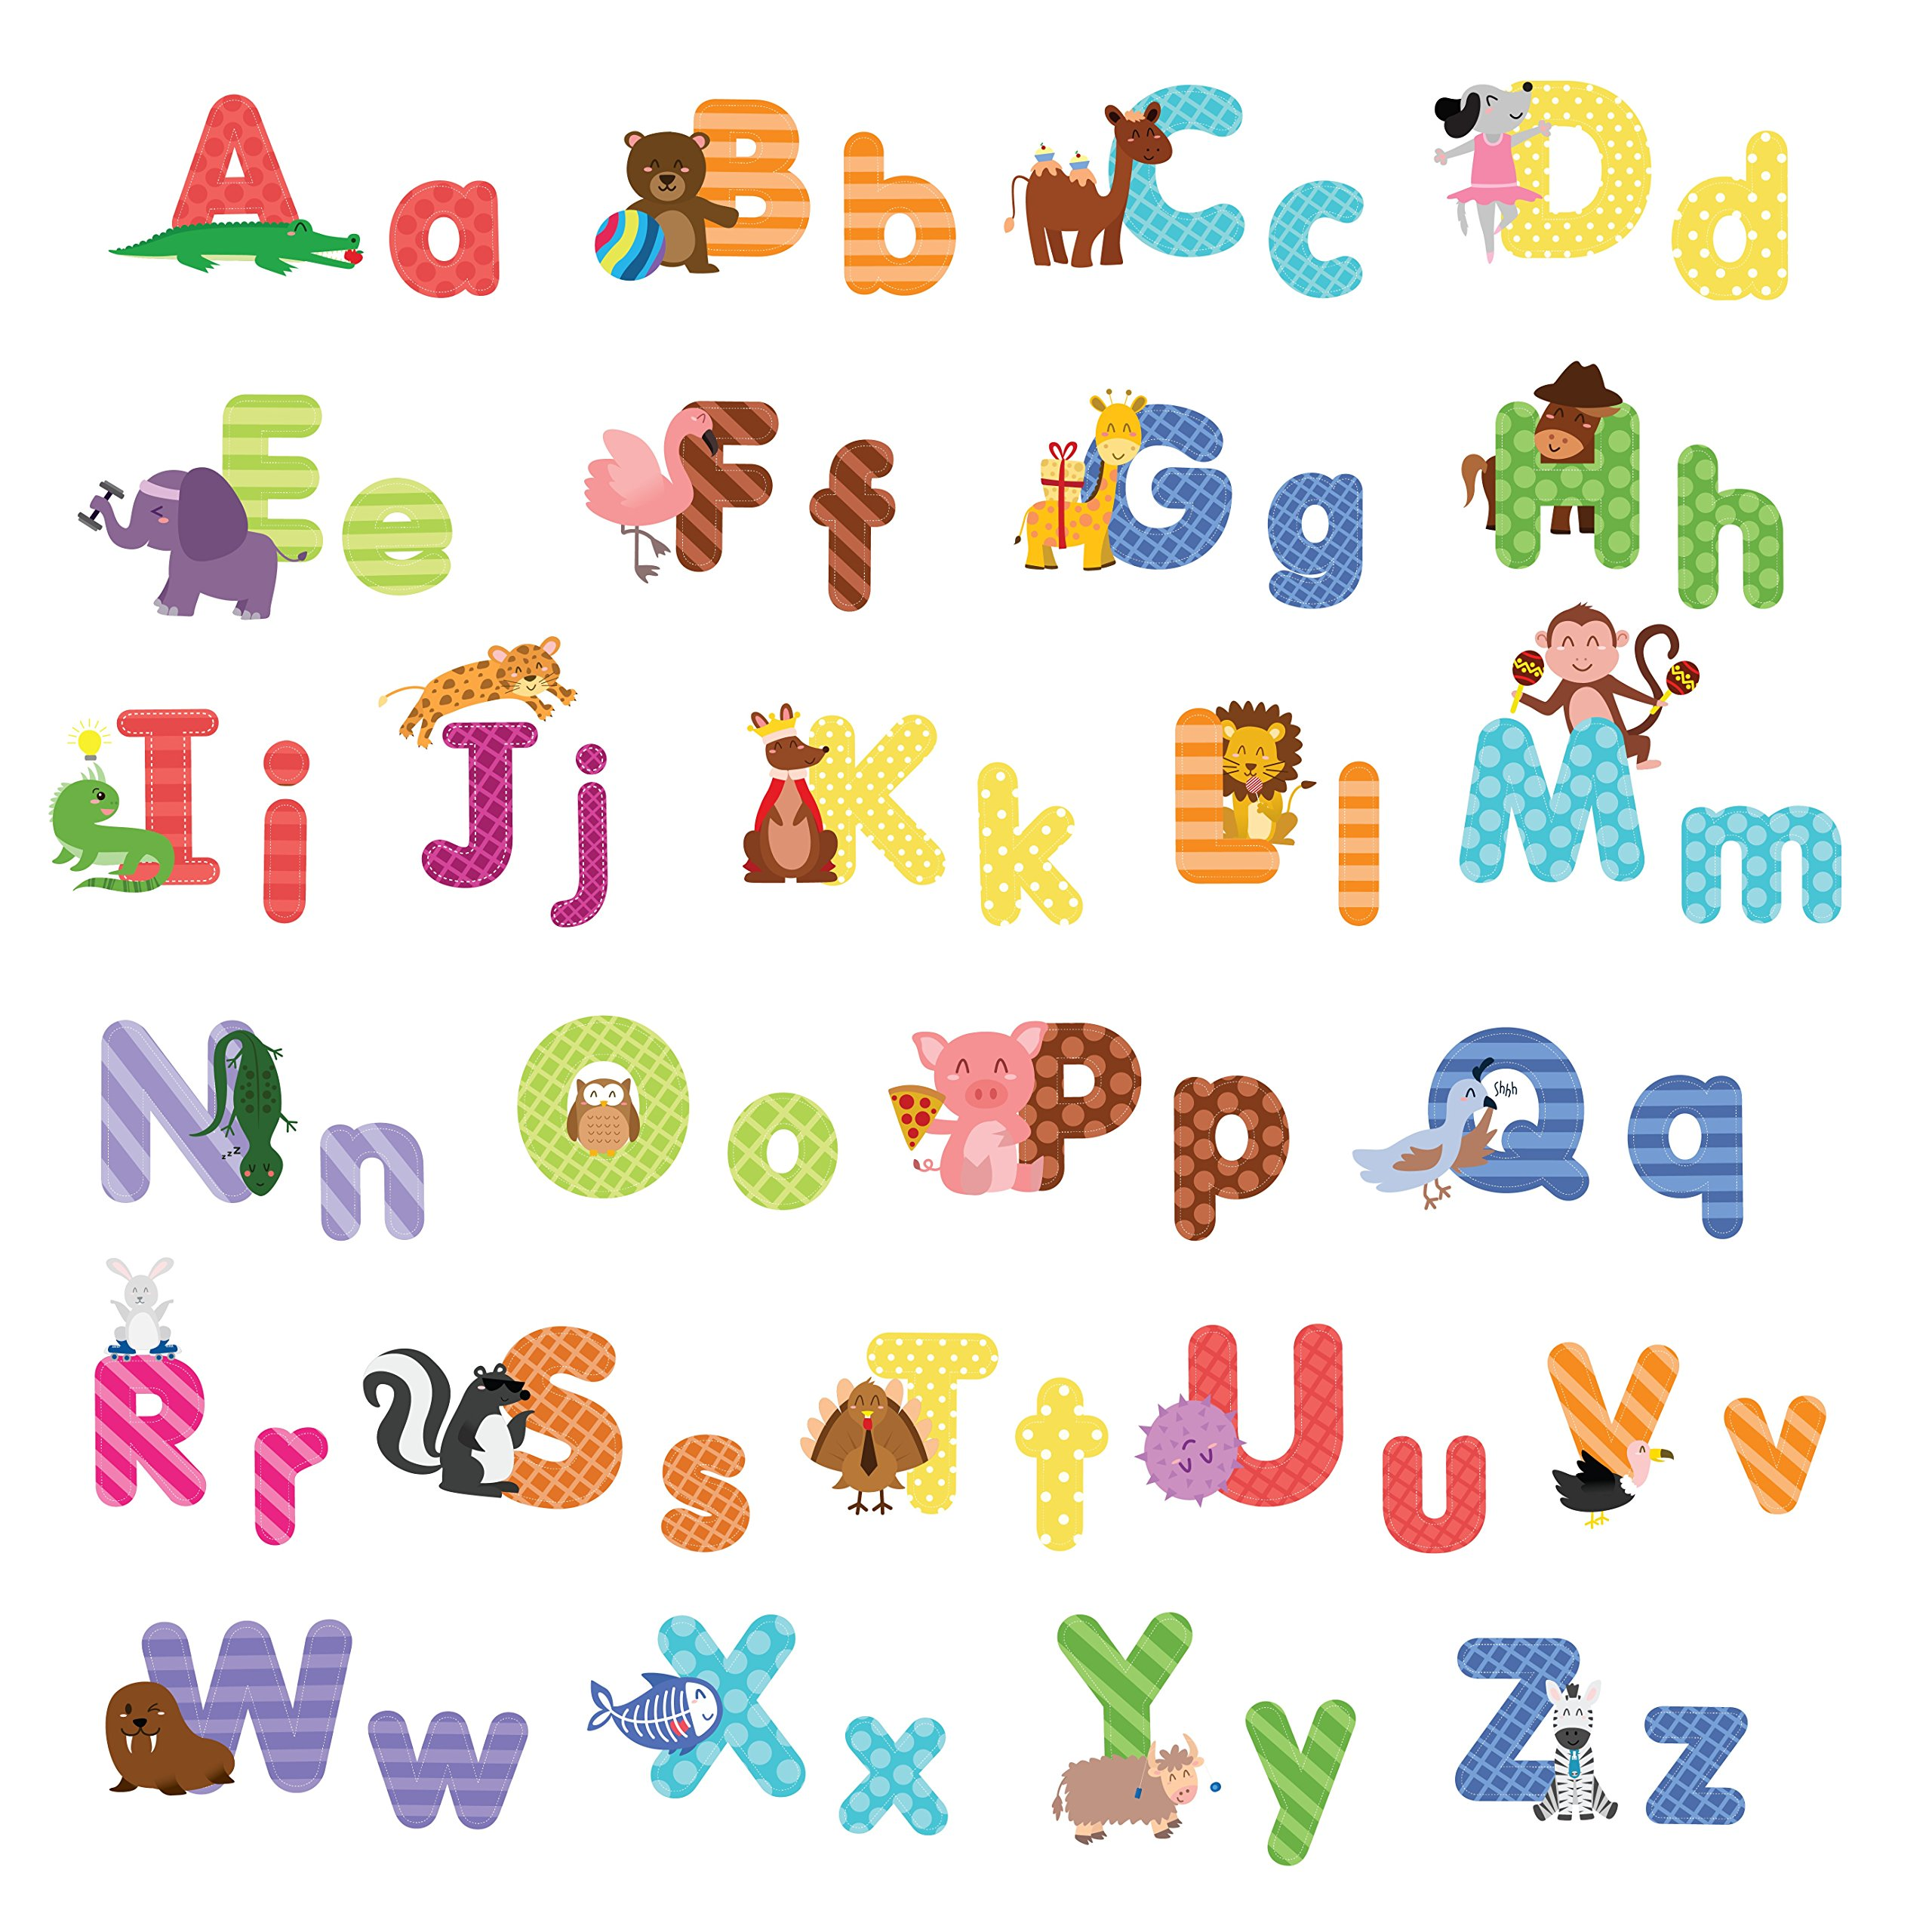 treepenguin Kids Animal Alphabet Wall Decals: Cute Removable ABC Wall Stickers for Toddler Boys and Girls Rooms - Large Educational Letters for Bedrooms Playrooms & Baby Nursery Wall Decor by treepenguin